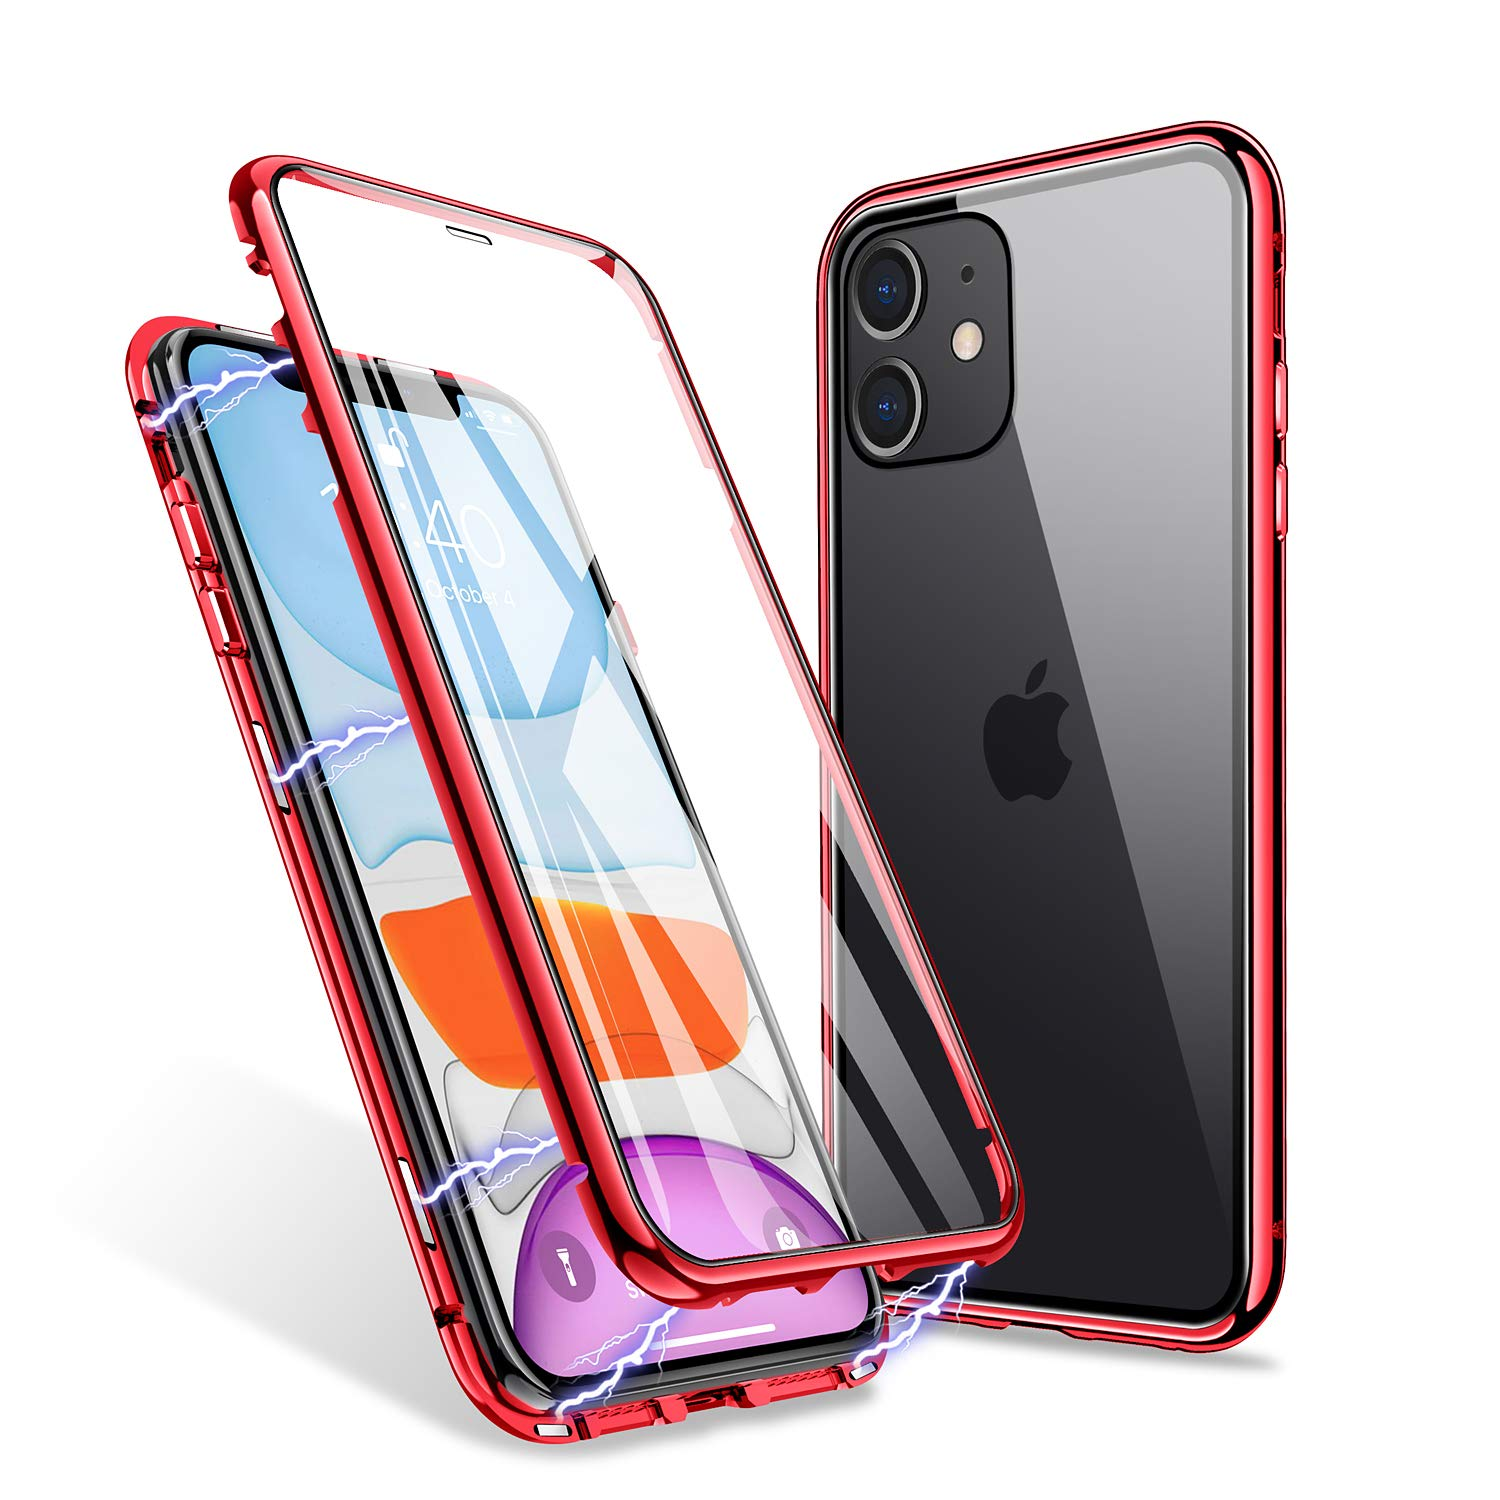 ZHIKE iPhone 11 Case, Magnetic Adsorption Case Front and Back Tempered Glass Full Screen Coverage One-piece Design Flip Cover [Support Wireless Charging] (Clear Red)